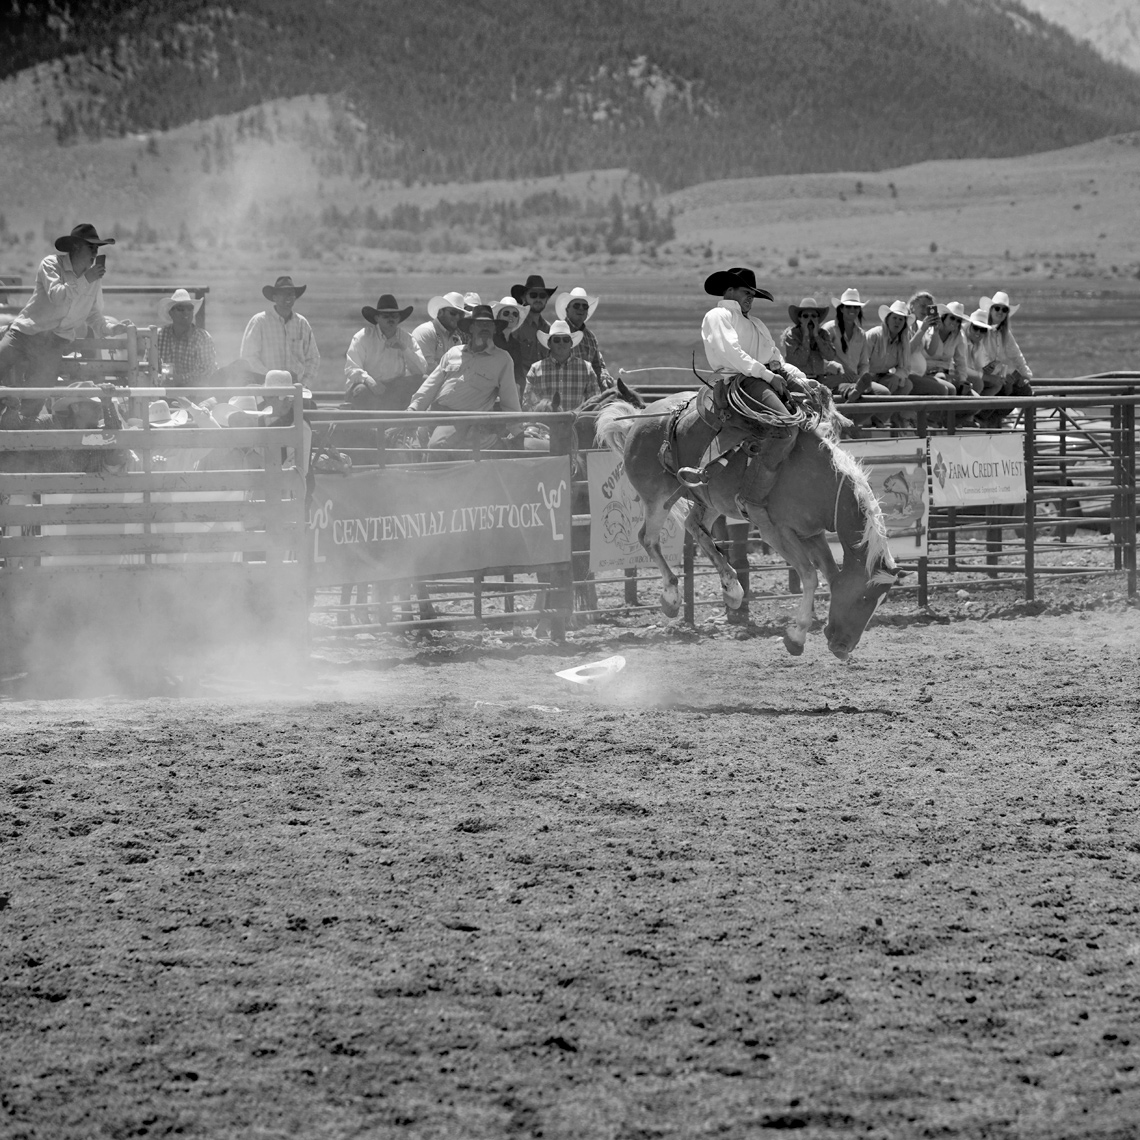 Roadtripping_BridgeportRodeo_BroncRider09_Action_Personal_Retouched_Web